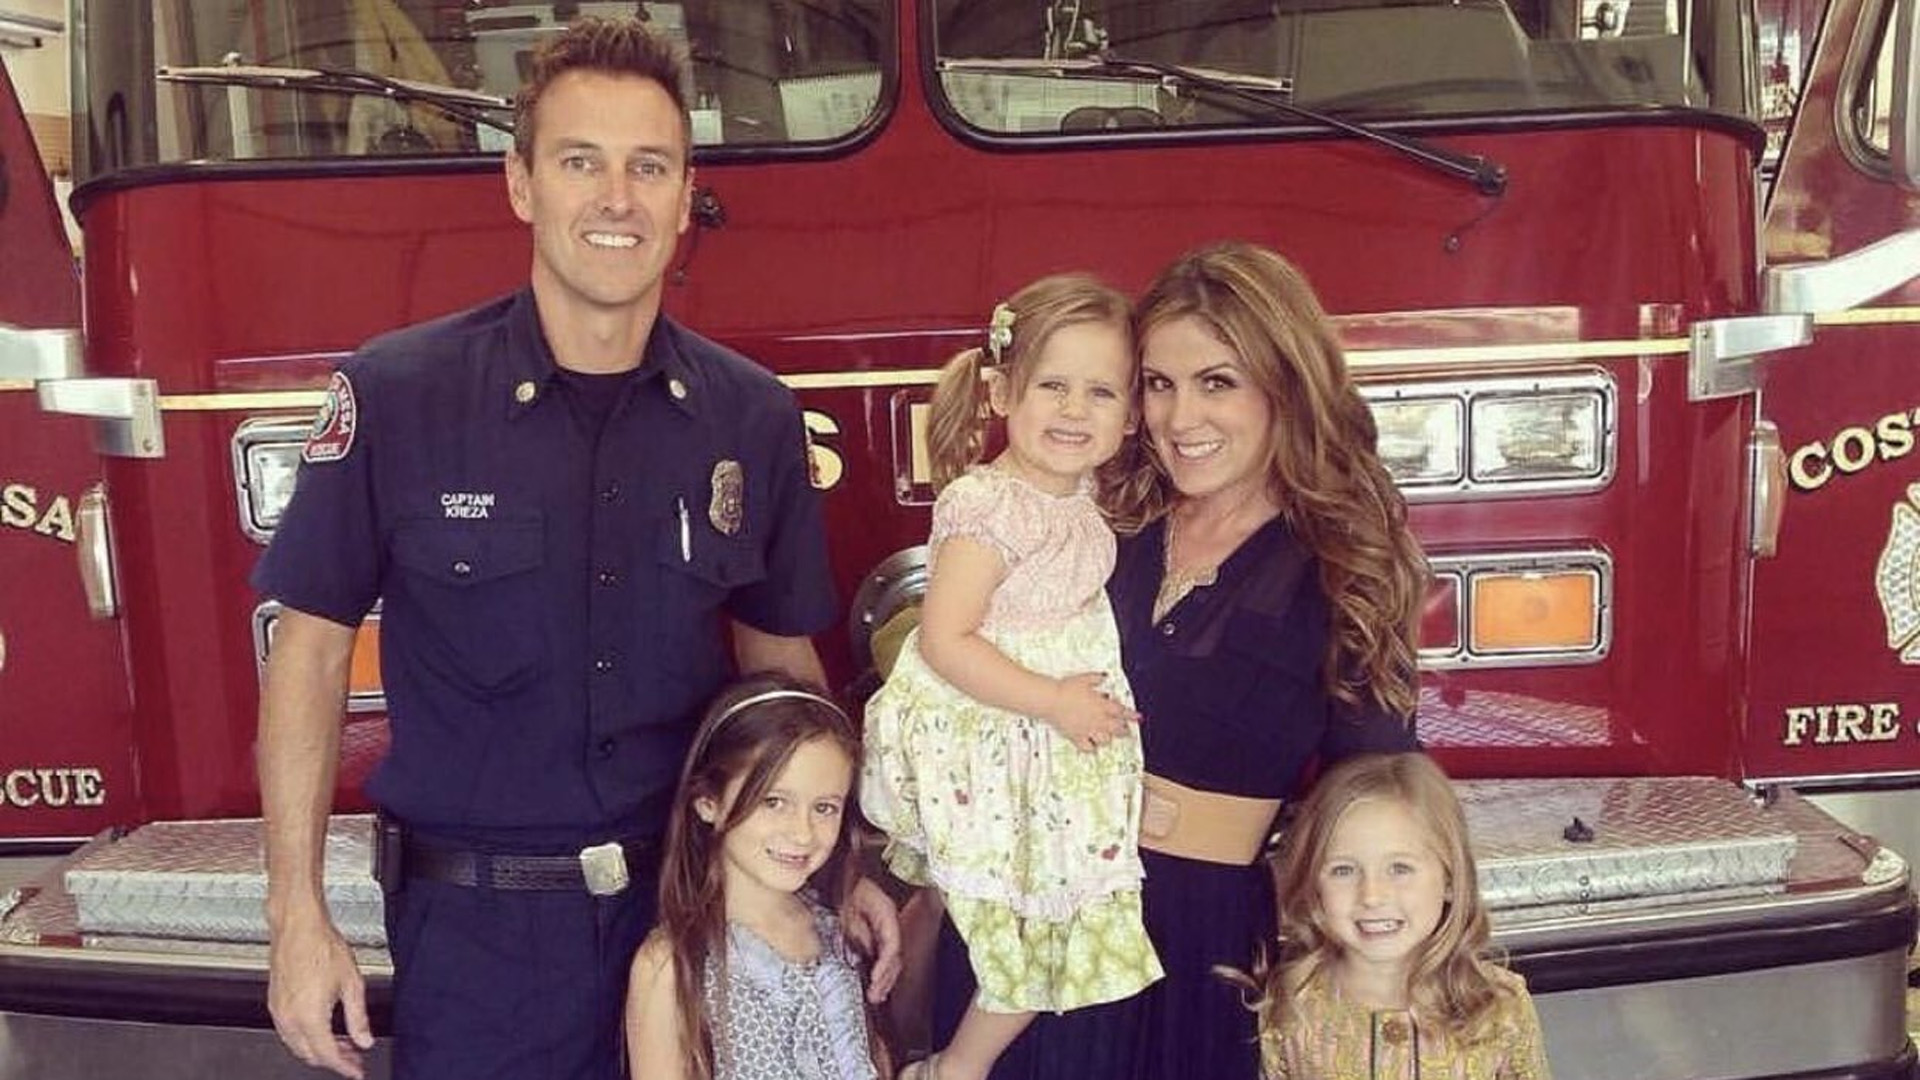 Costa Mesa Fire and Rescue Capt. Mike Kreza is seen with his family in an image posted to GoFundMe on Nov. 3, 2018.